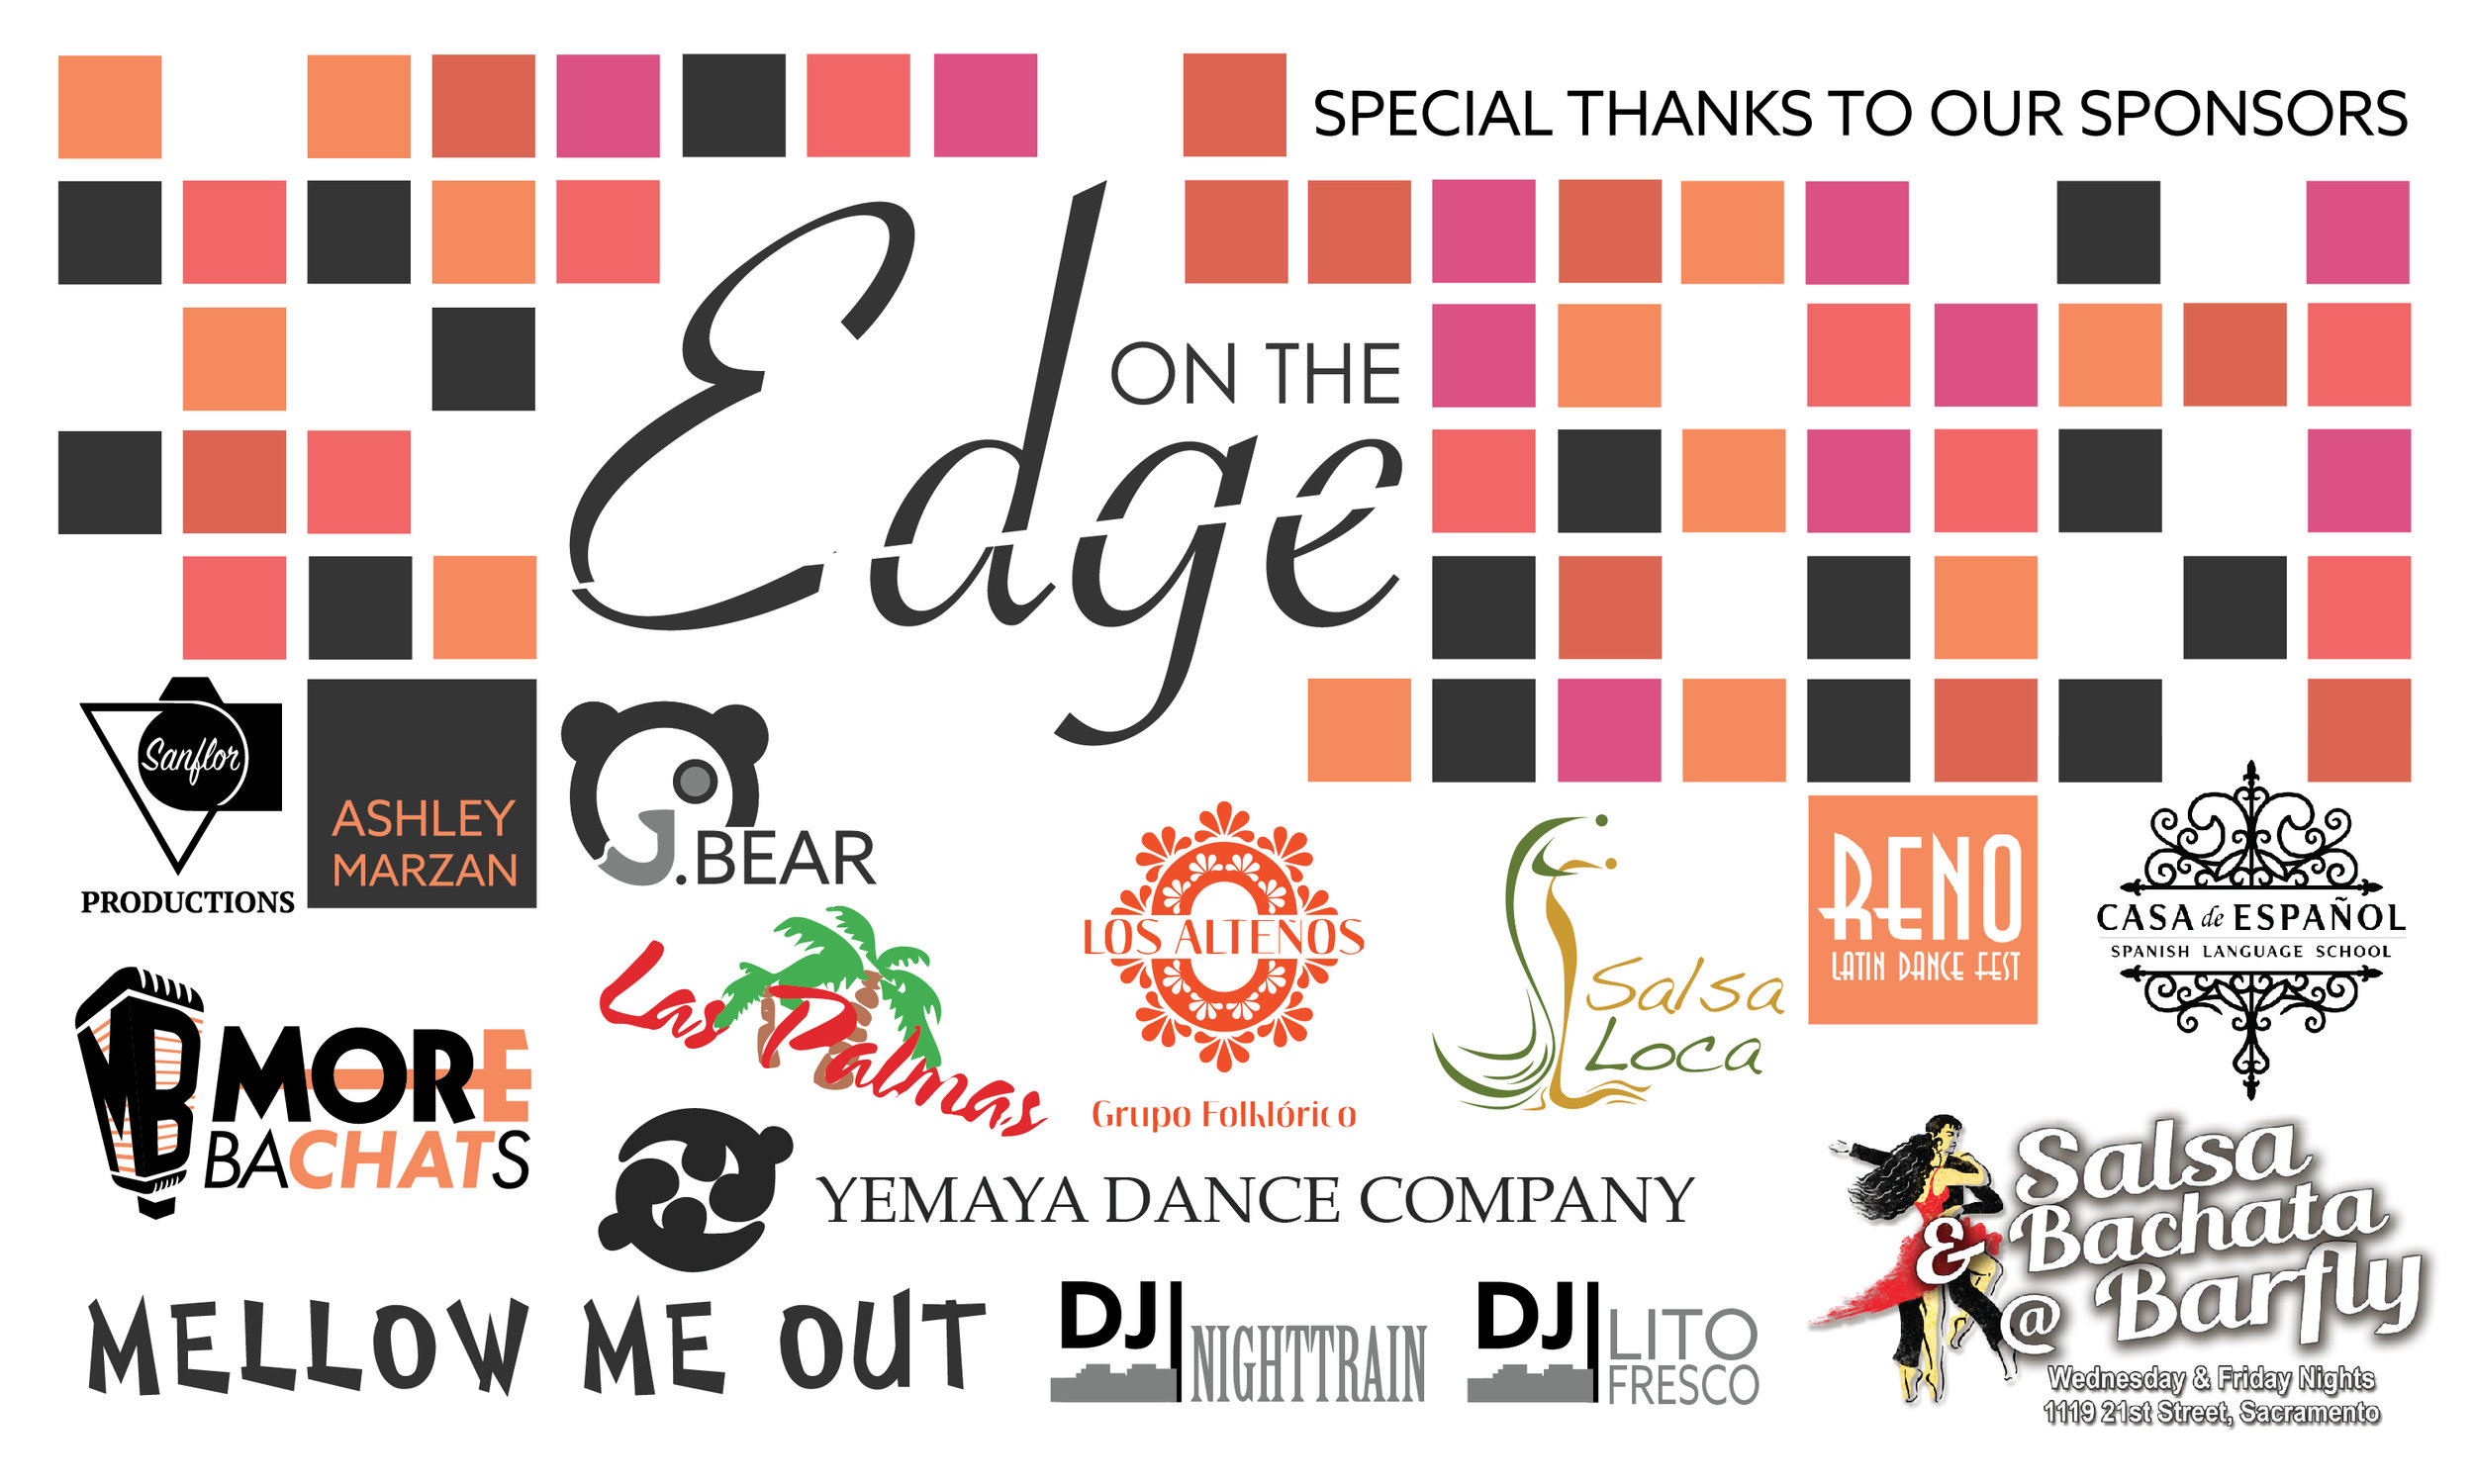 Be on the edge - Want To Support Our Mission?We are looking for sponsors, vendors, & partners for our next events.